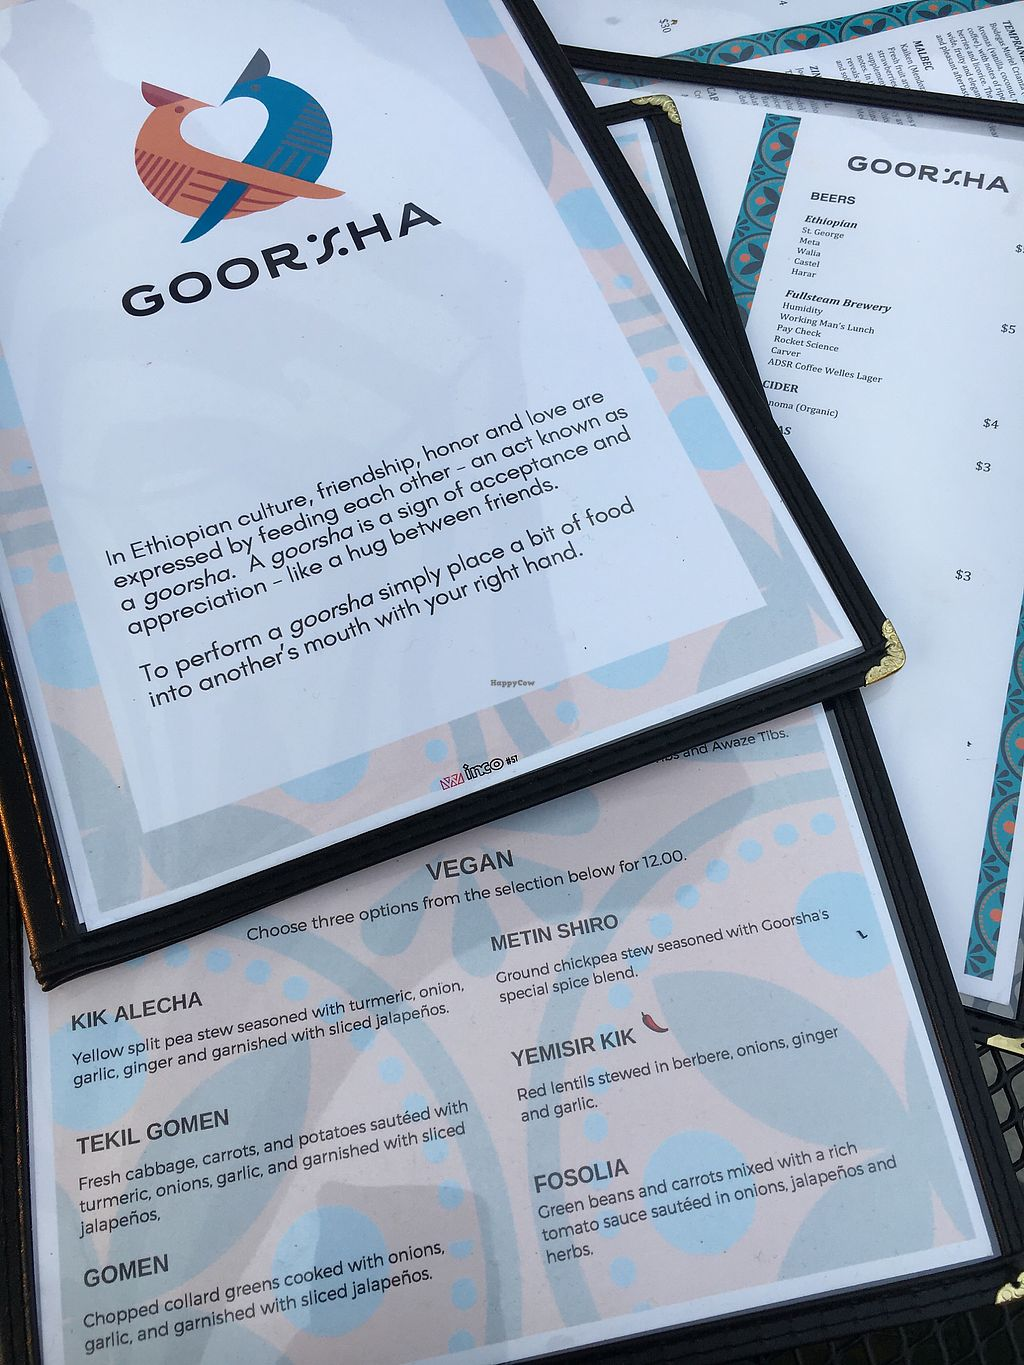 """Photo of Goorsha  by <a href=""""/members/profile/turtleveg"""">turtleveg</a> <br/>menu labels vegan options  <br/> August 4, 2017  - <a href='/contact/abuse/image/97231/288462'>Report</a>"""